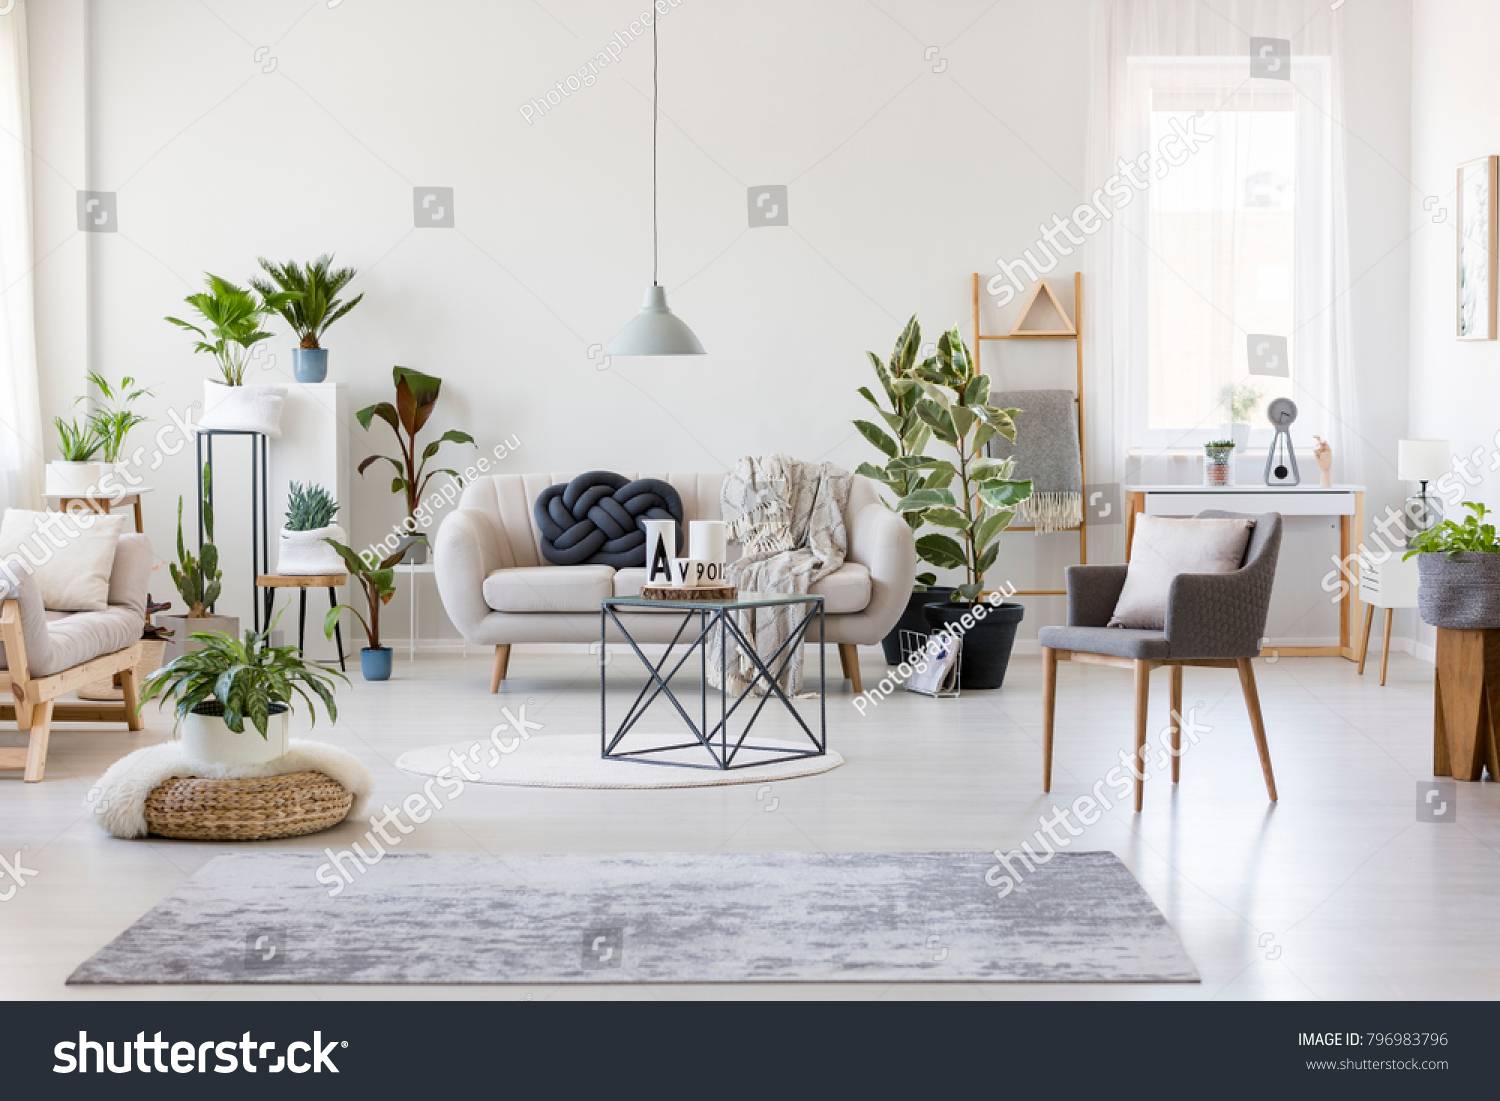 Gray Rug Pouf Armchair Spacious Floral Stock Photo (Royalty Free ...